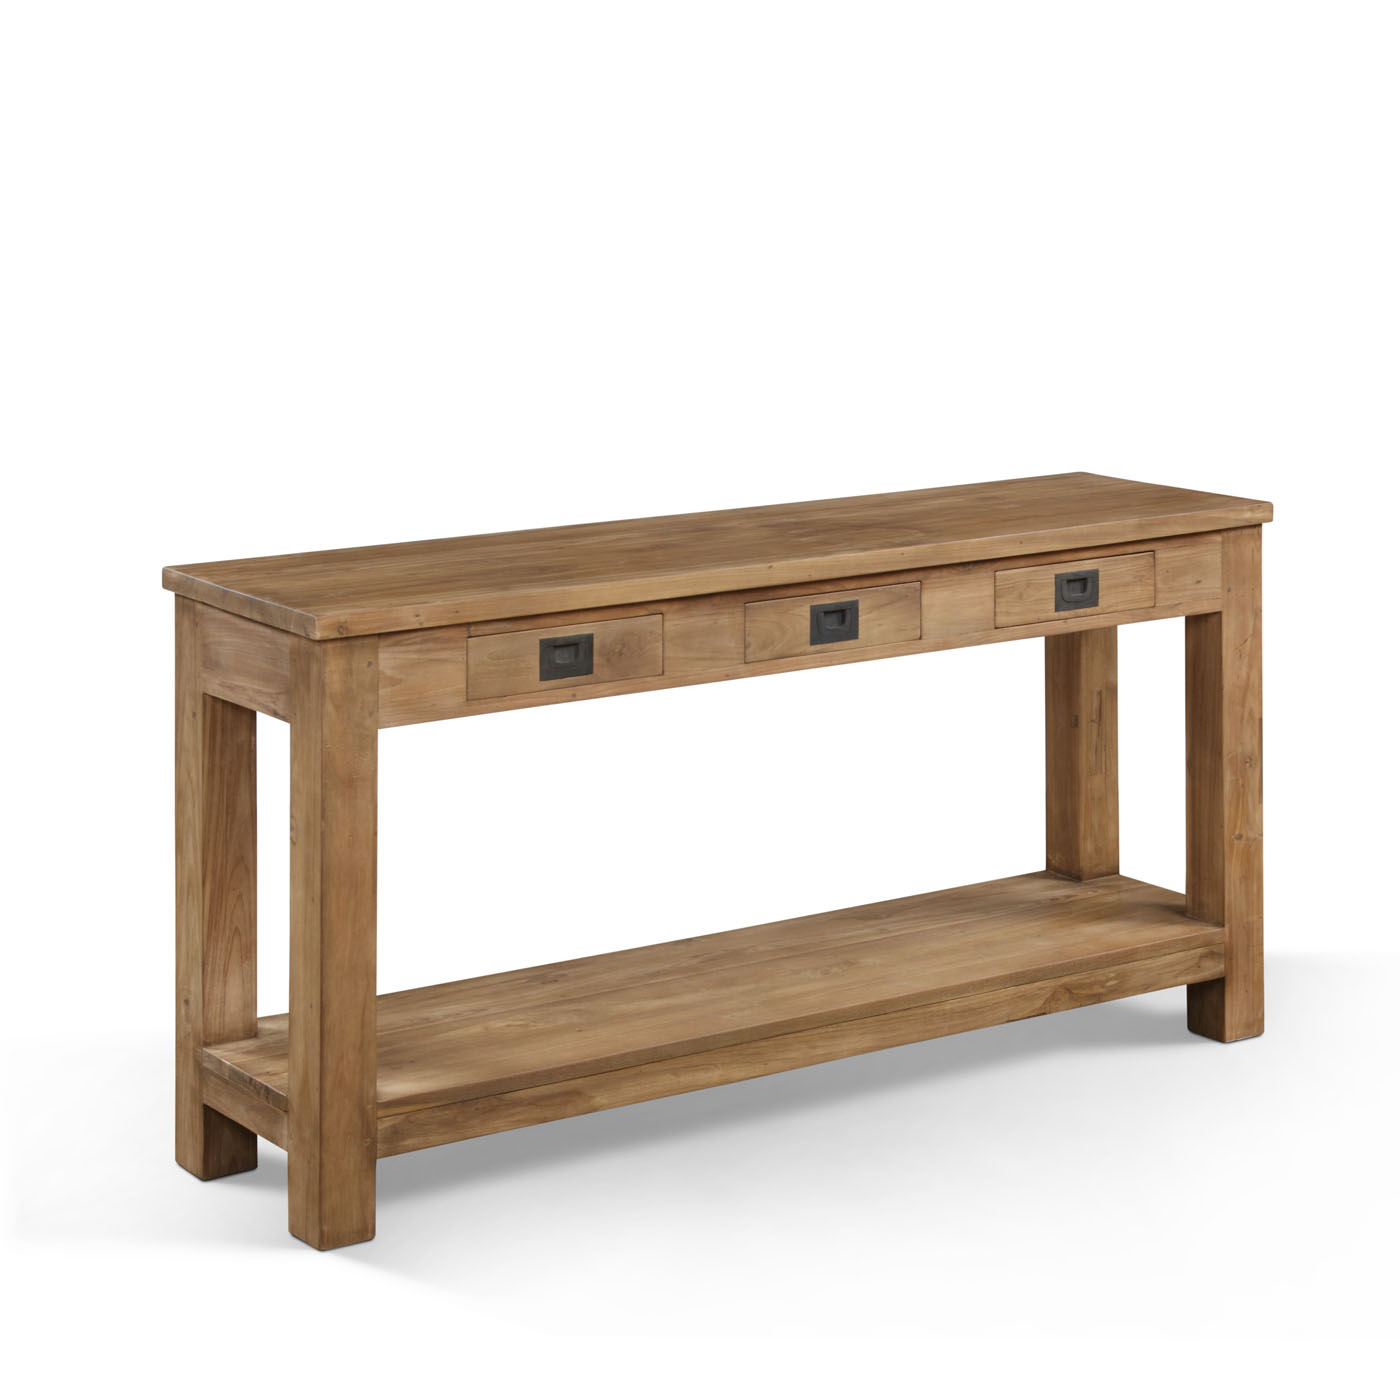 Echelon Narrow Console Table Reviews Crate And Barrel Demilune For Well Known Echelon Console Tables (View 6 of 20)